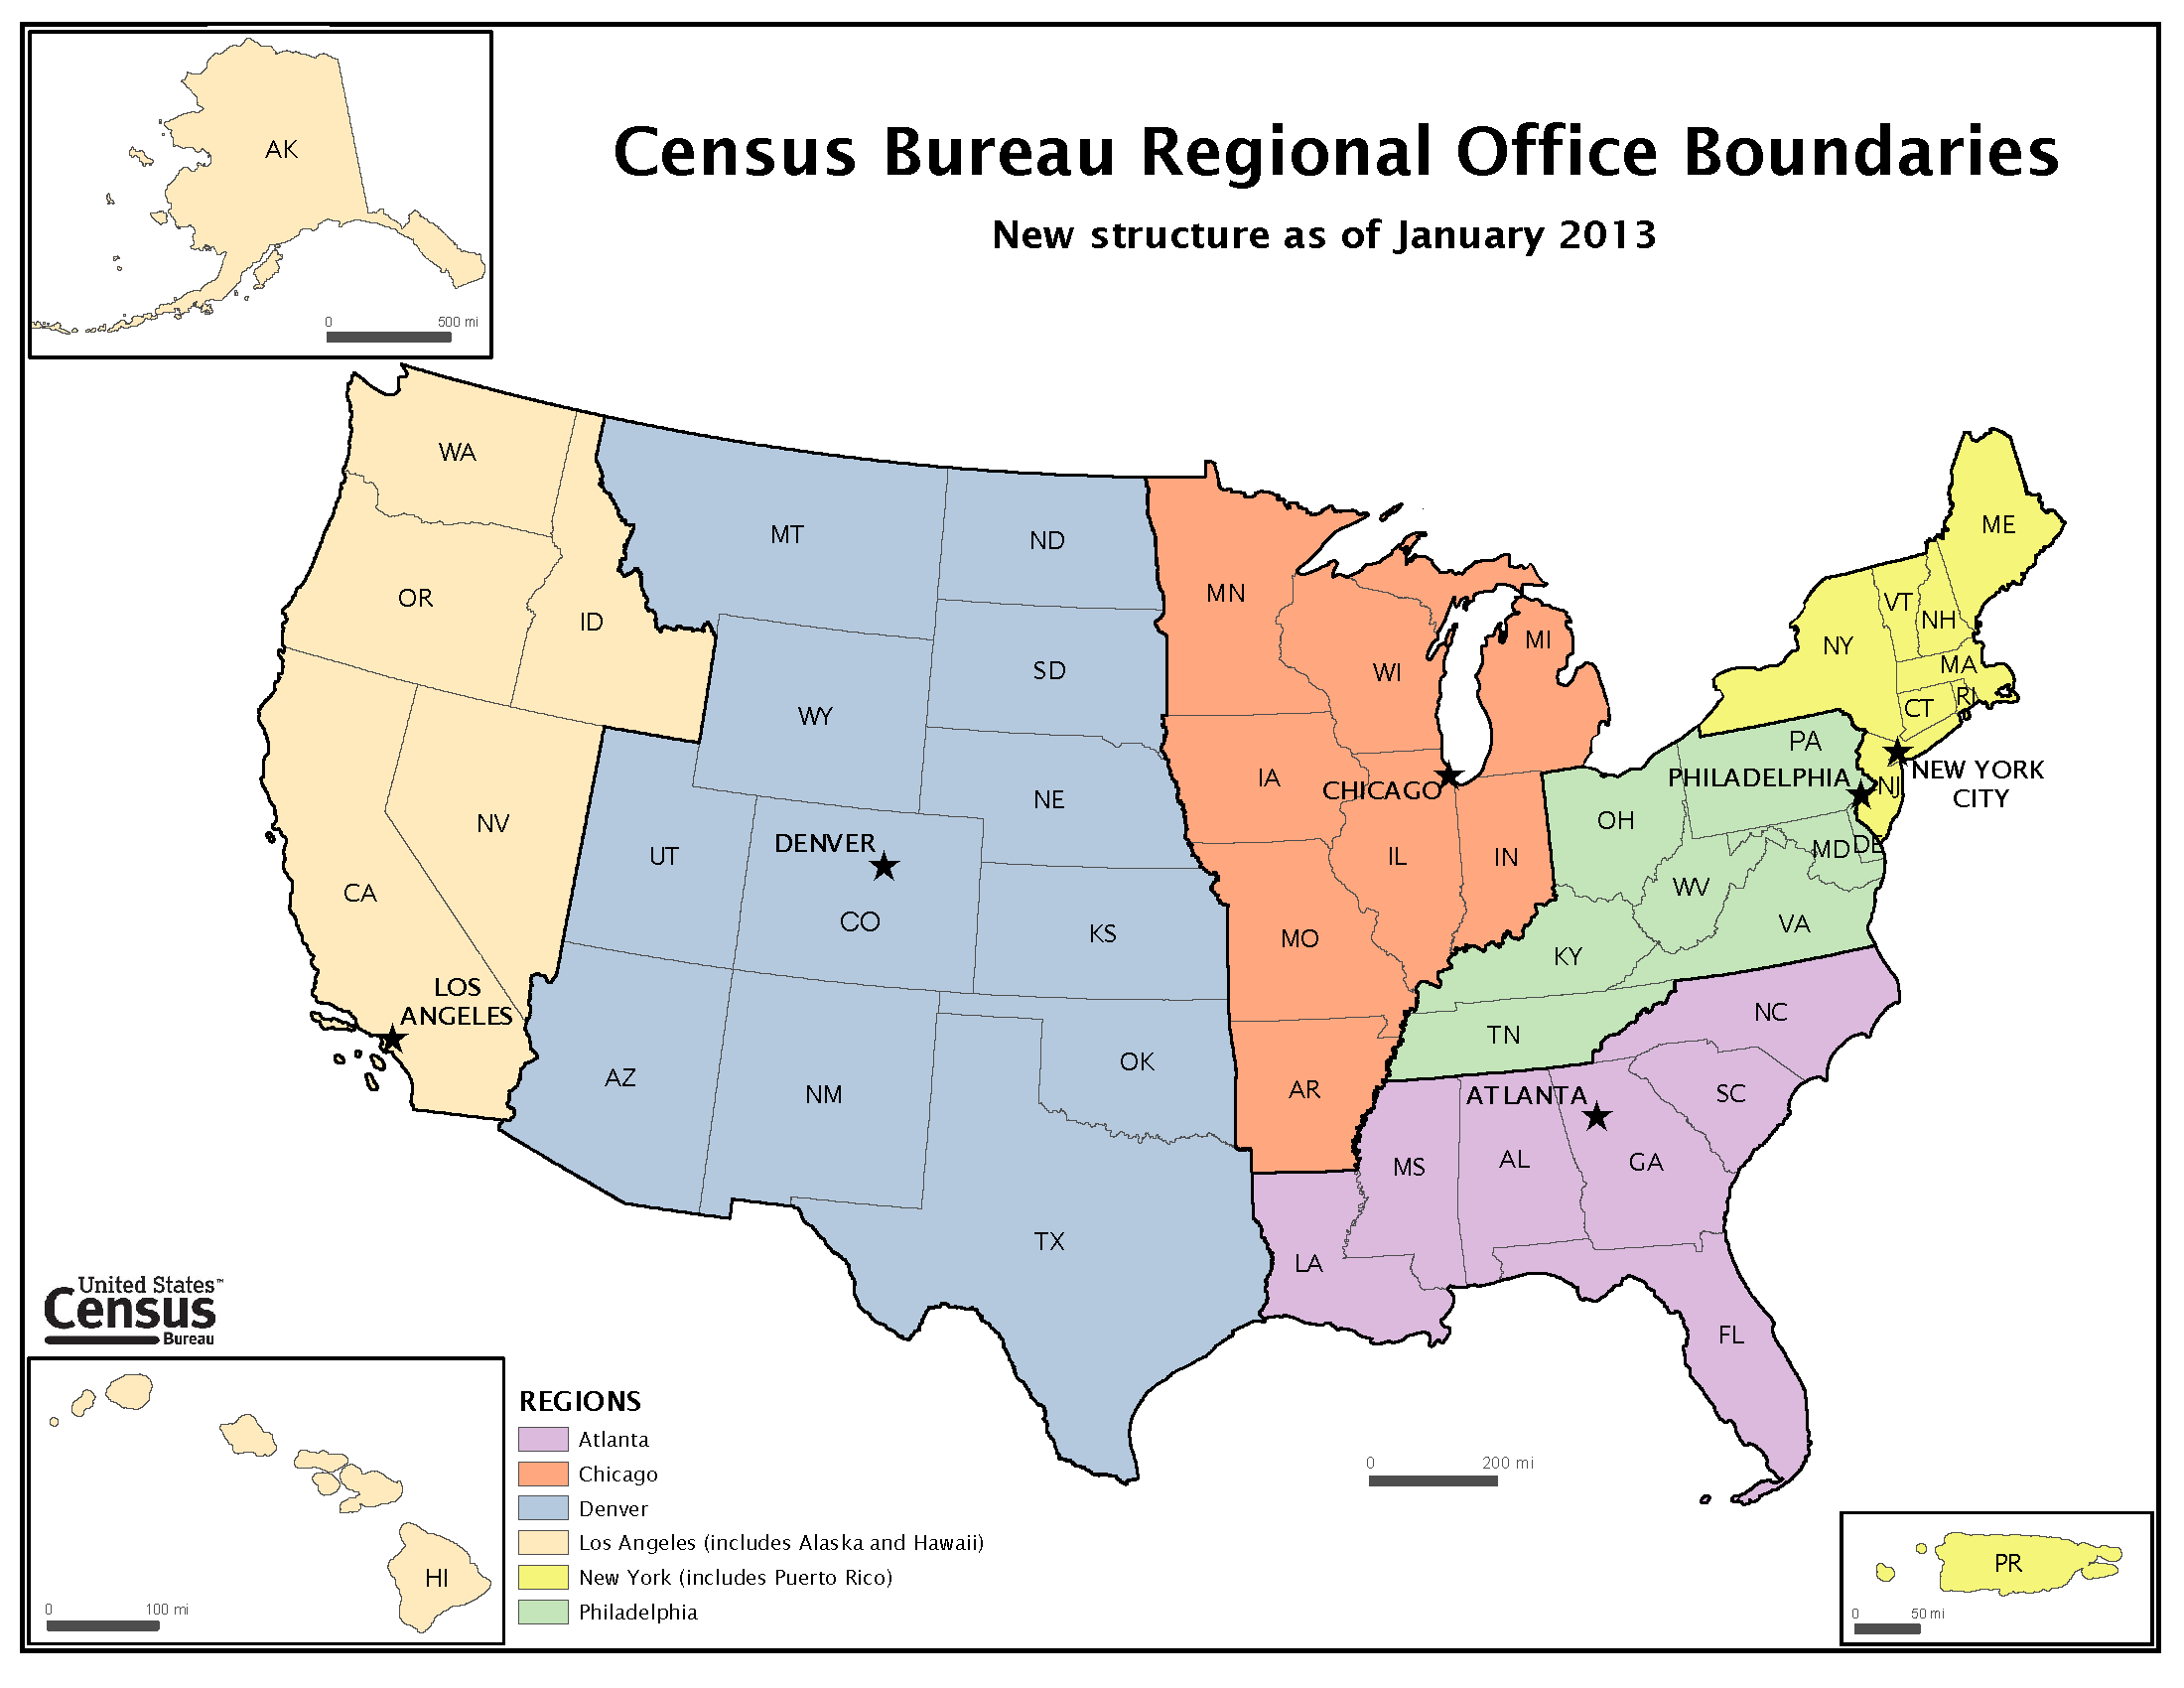 http://upload.wikimedia.org/wikipedia/commons/9/99/Census_Regions_and_Divisions.PNG